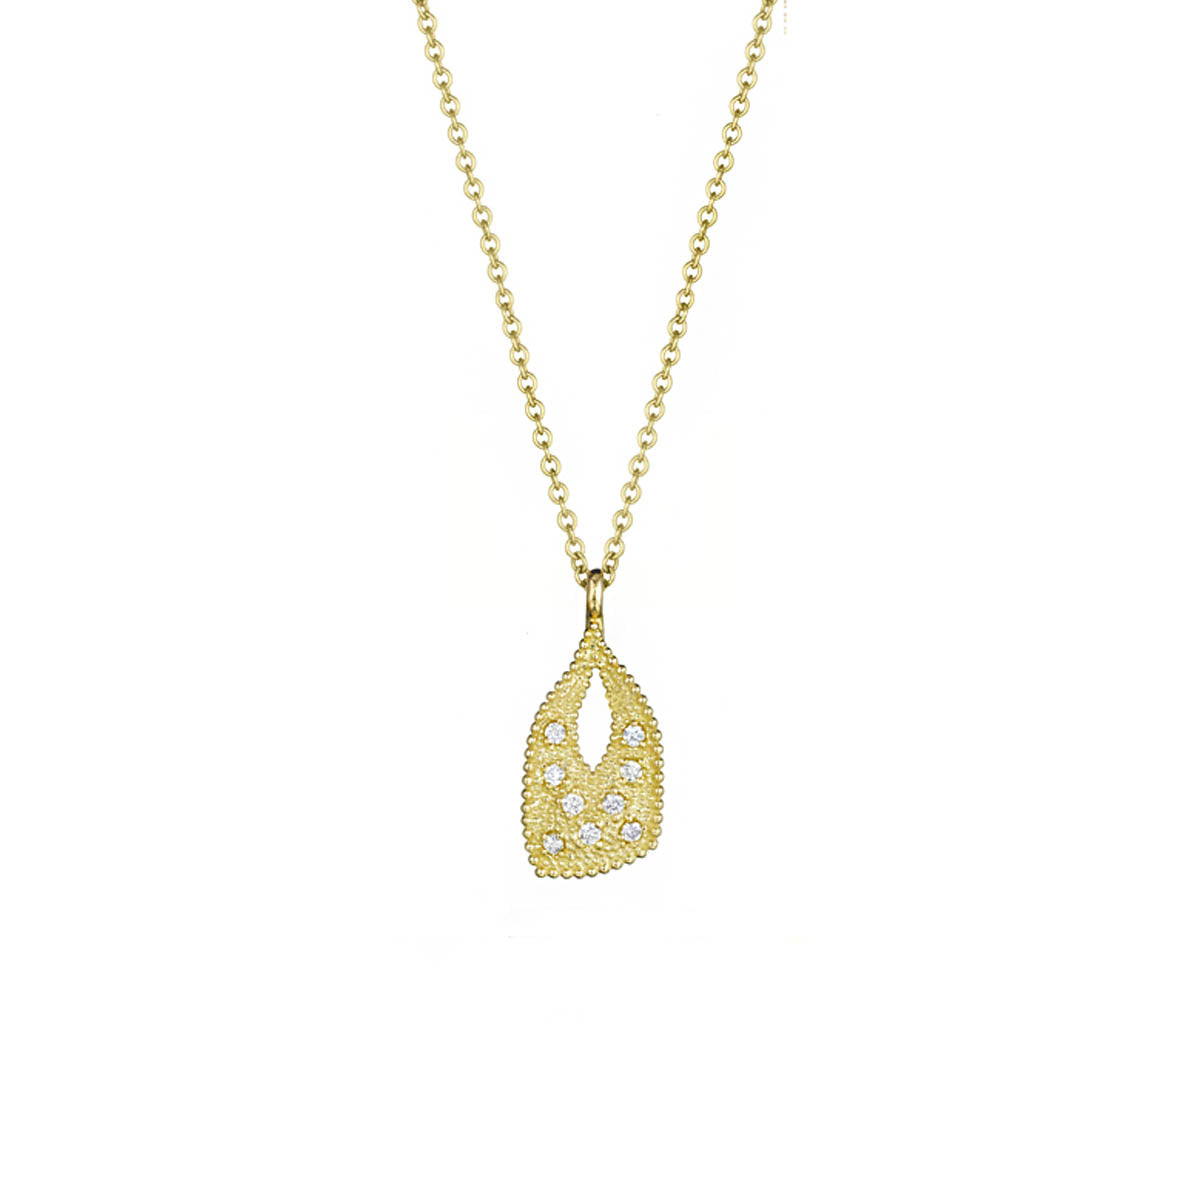 Petite Gold Charm, Nouveau Diamond and Gold Charm